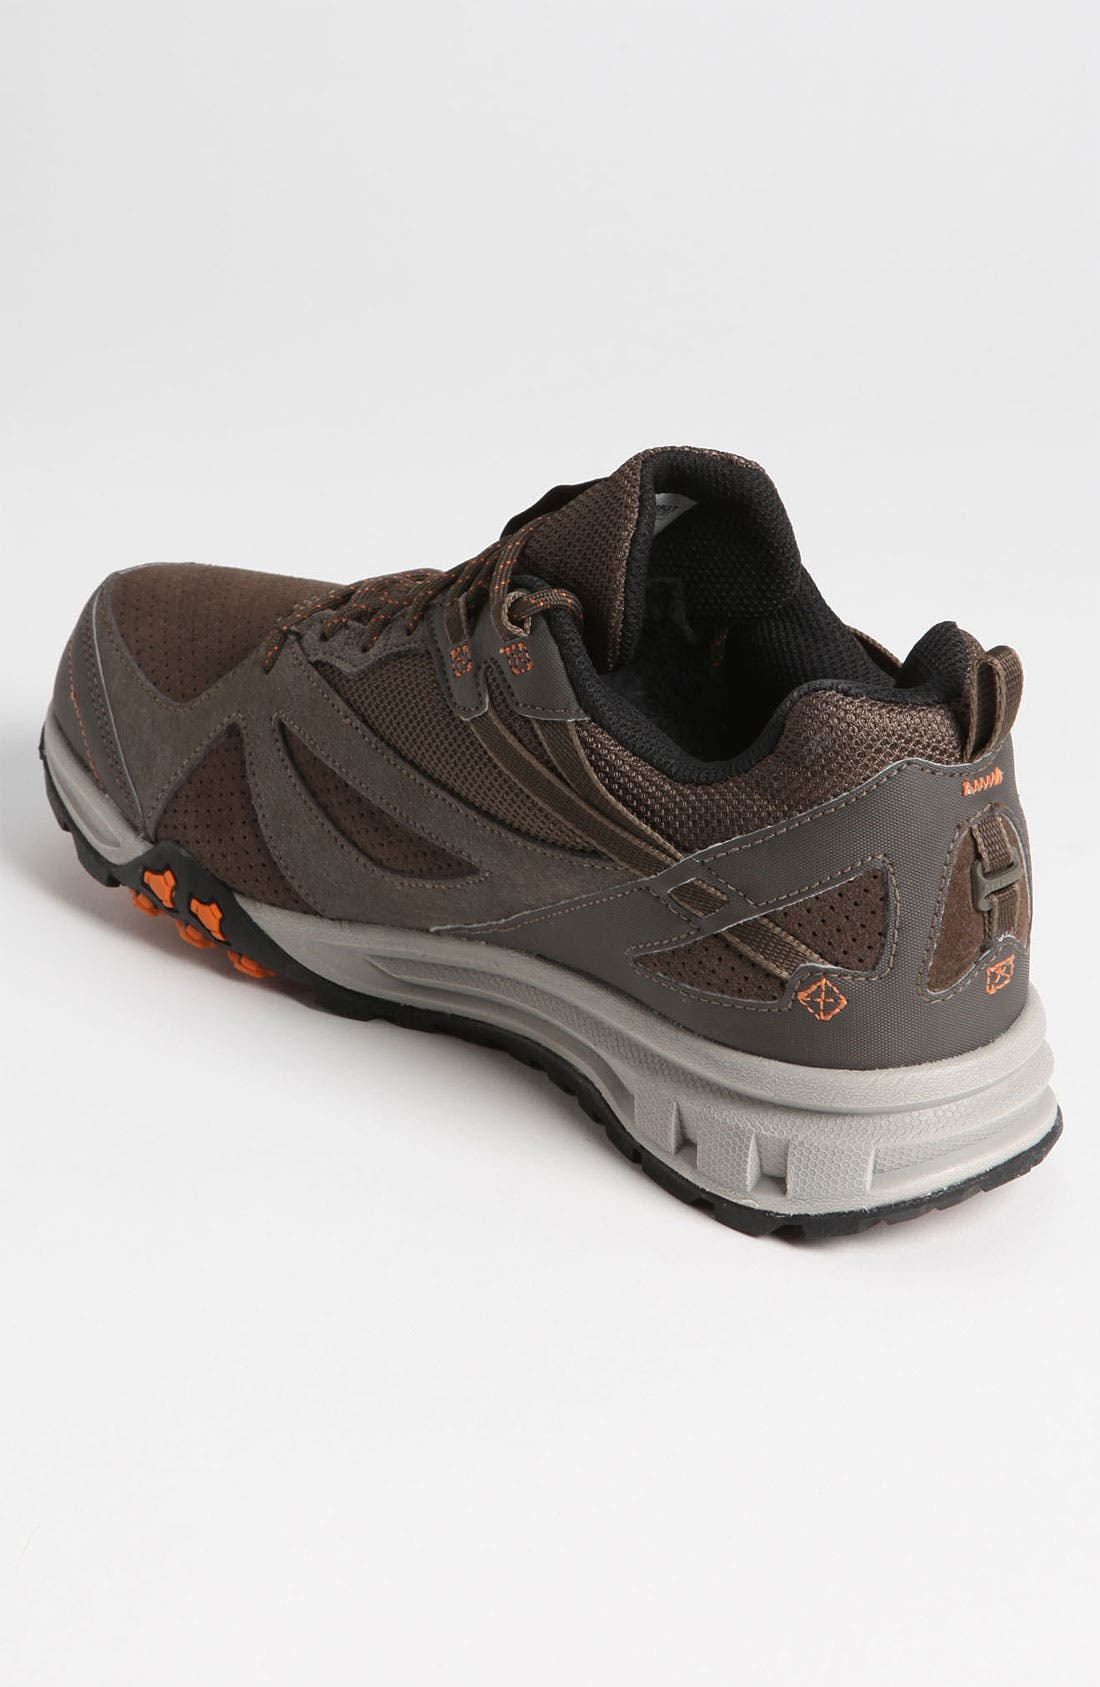 Alternate Image 2  - NEW BALANCE 989 HIKING SHOE